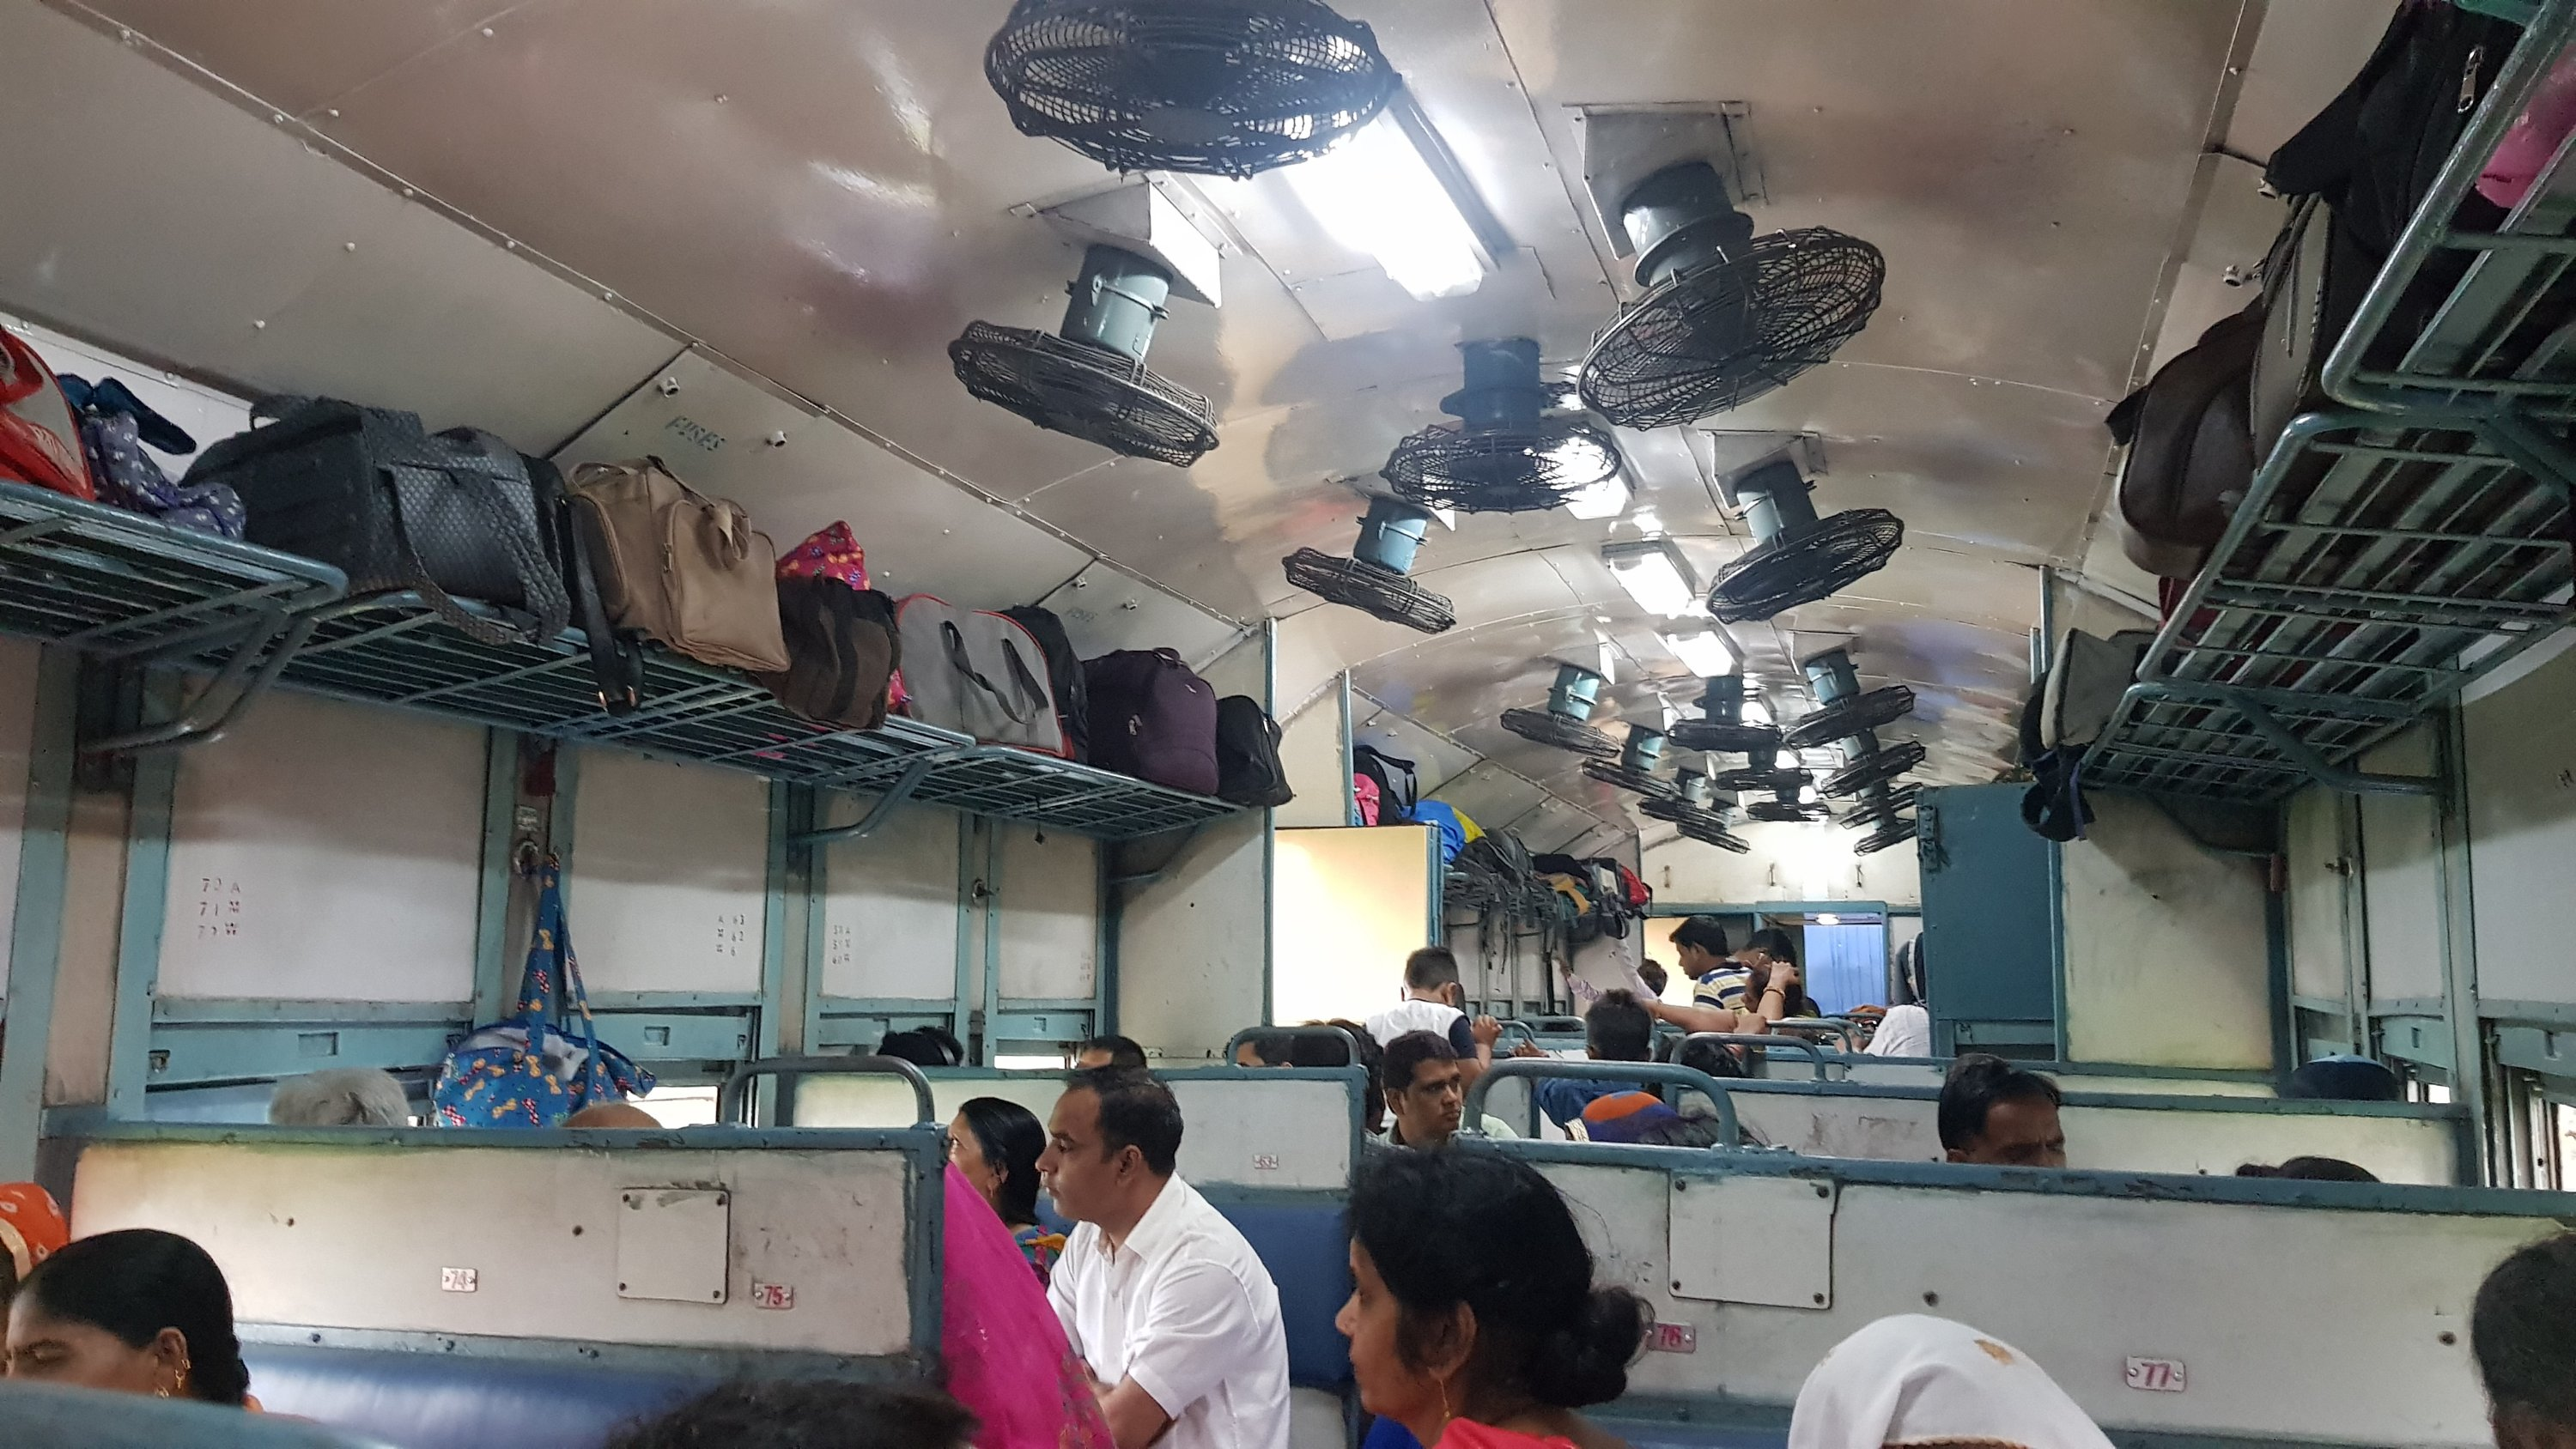 Udaipur train